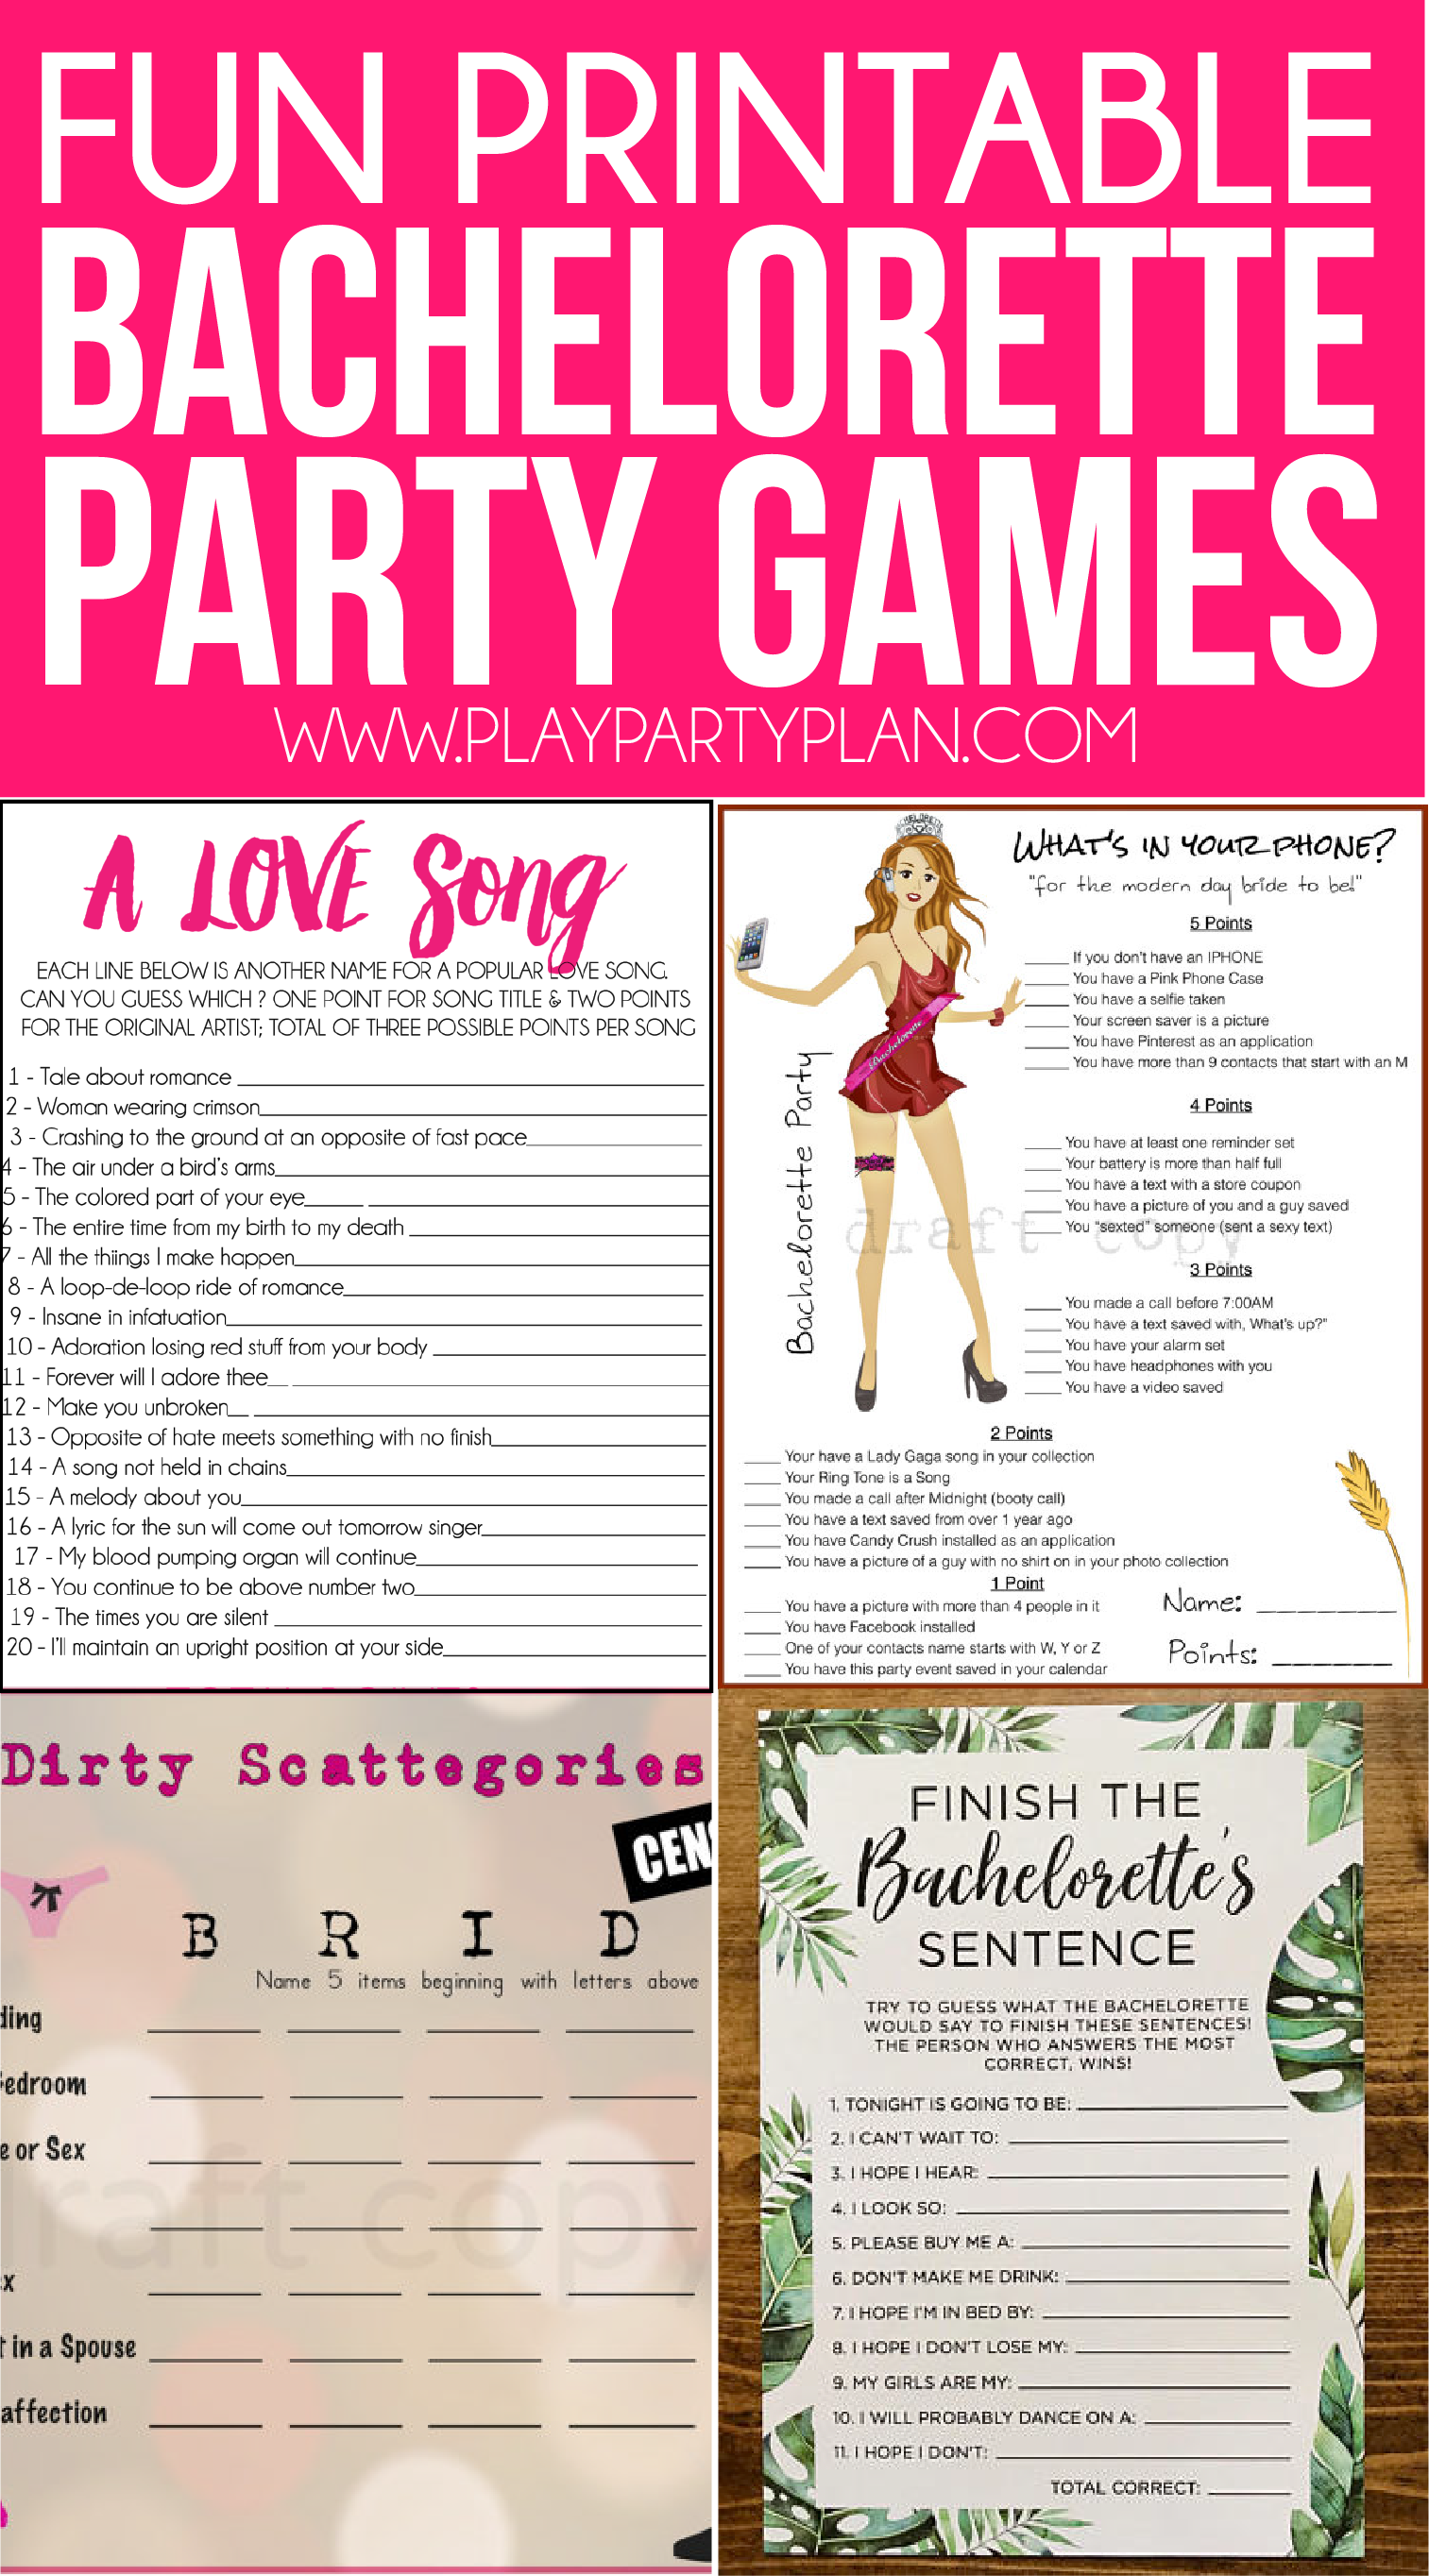 Magic image for bachelorette party games printable